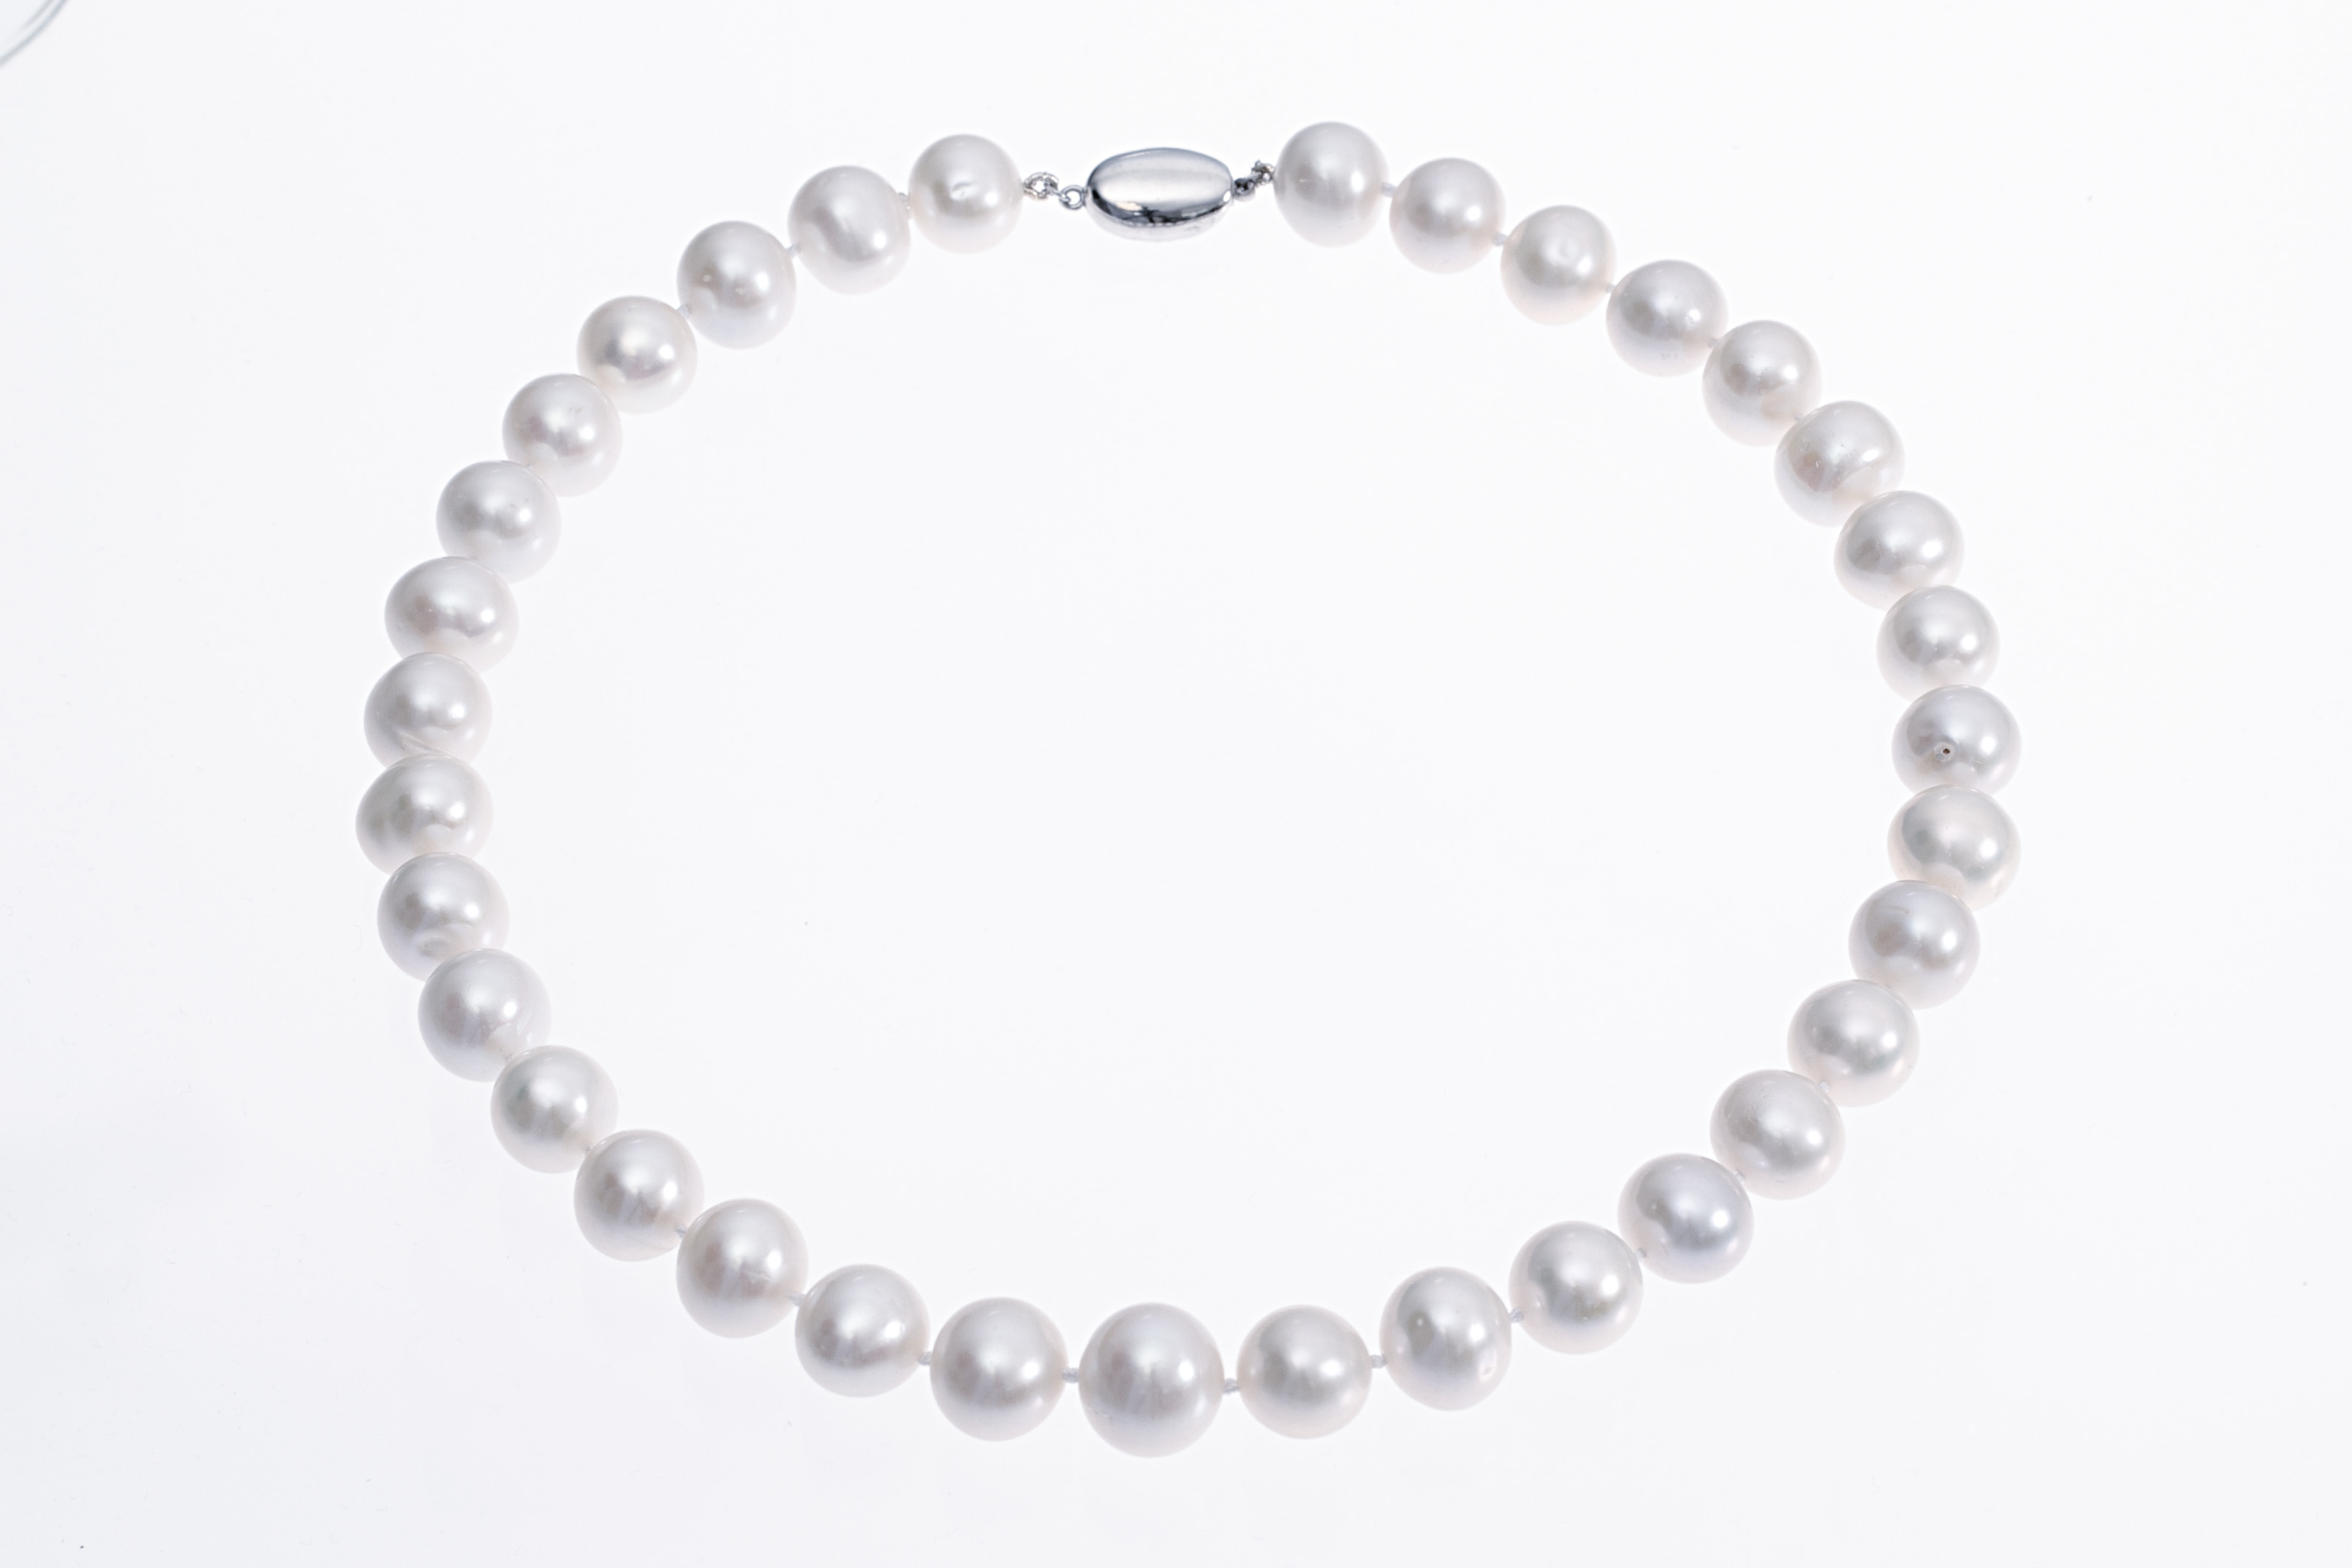 f6e20a4075b8f Large Freshwater cultured pearl necklace with silver clasp 13-14mm